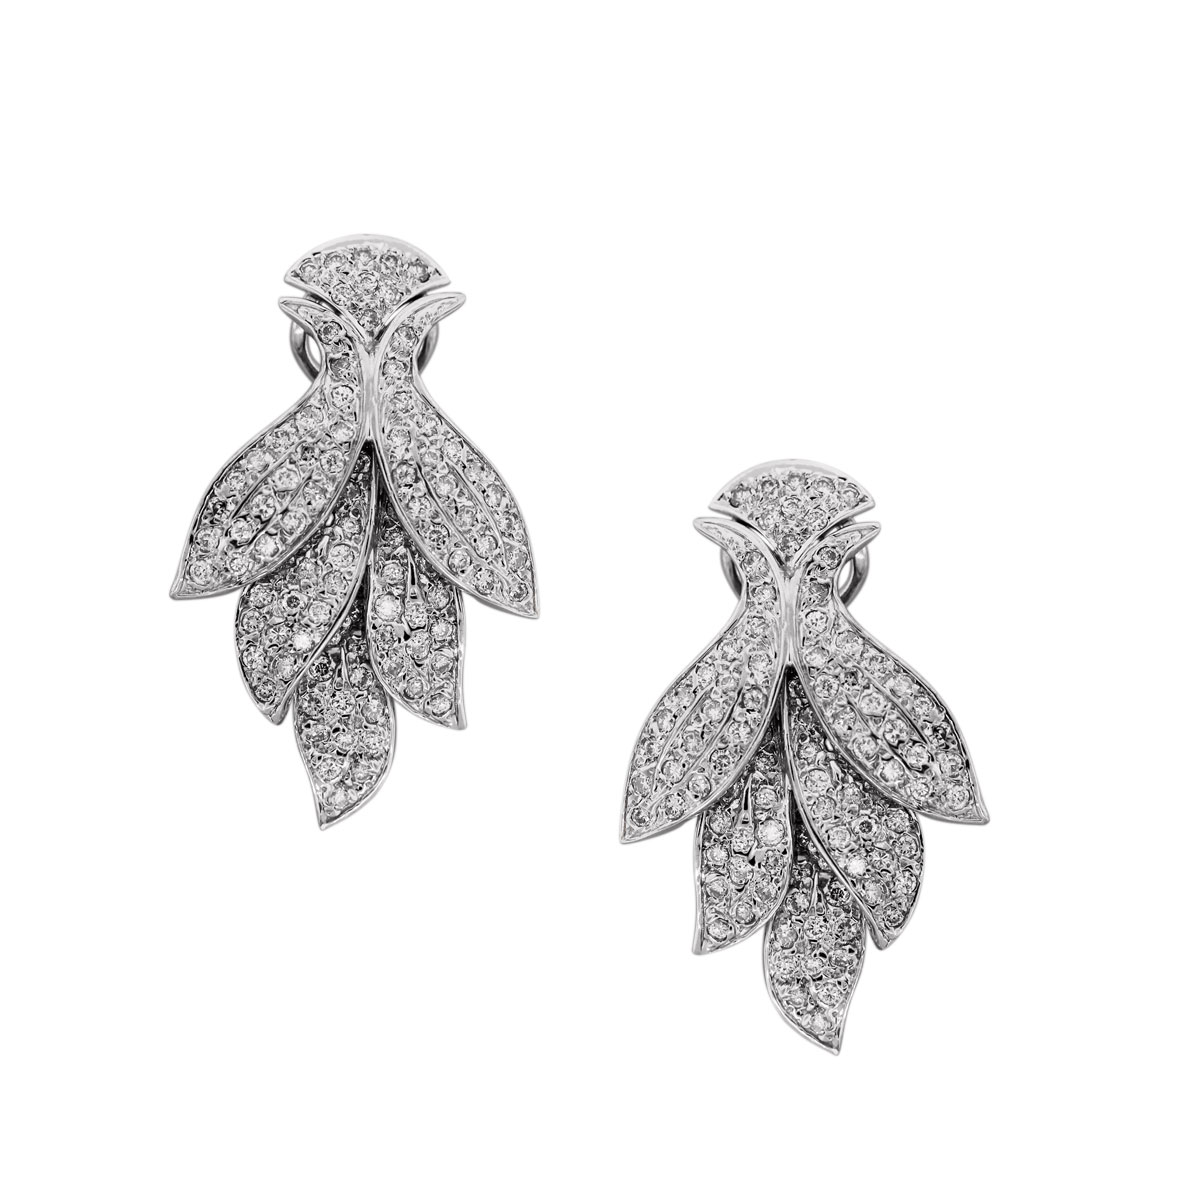 Diamond Pave Set Flower Earrings